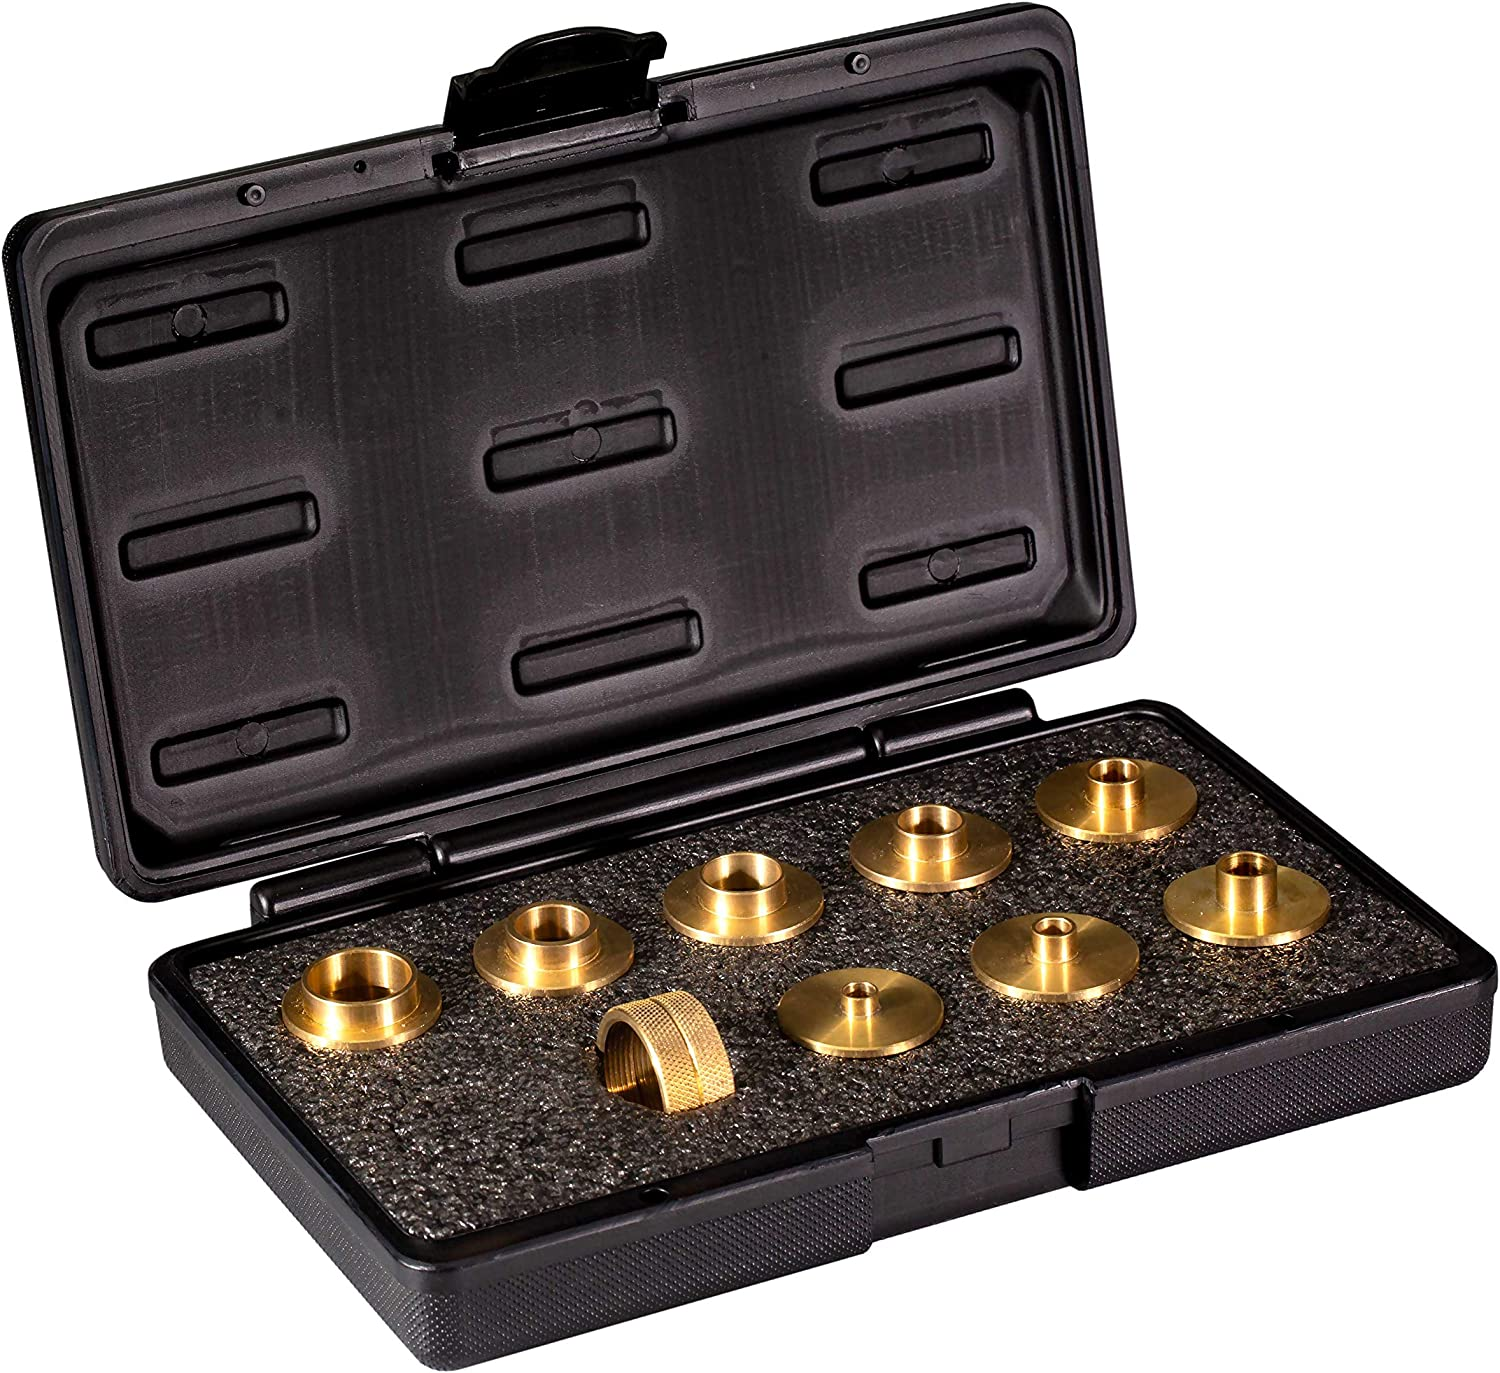 POWERTEC 71051 Router Template Guide Set | 10pc Solid Brass Guides w/Molded Carrying Case - -